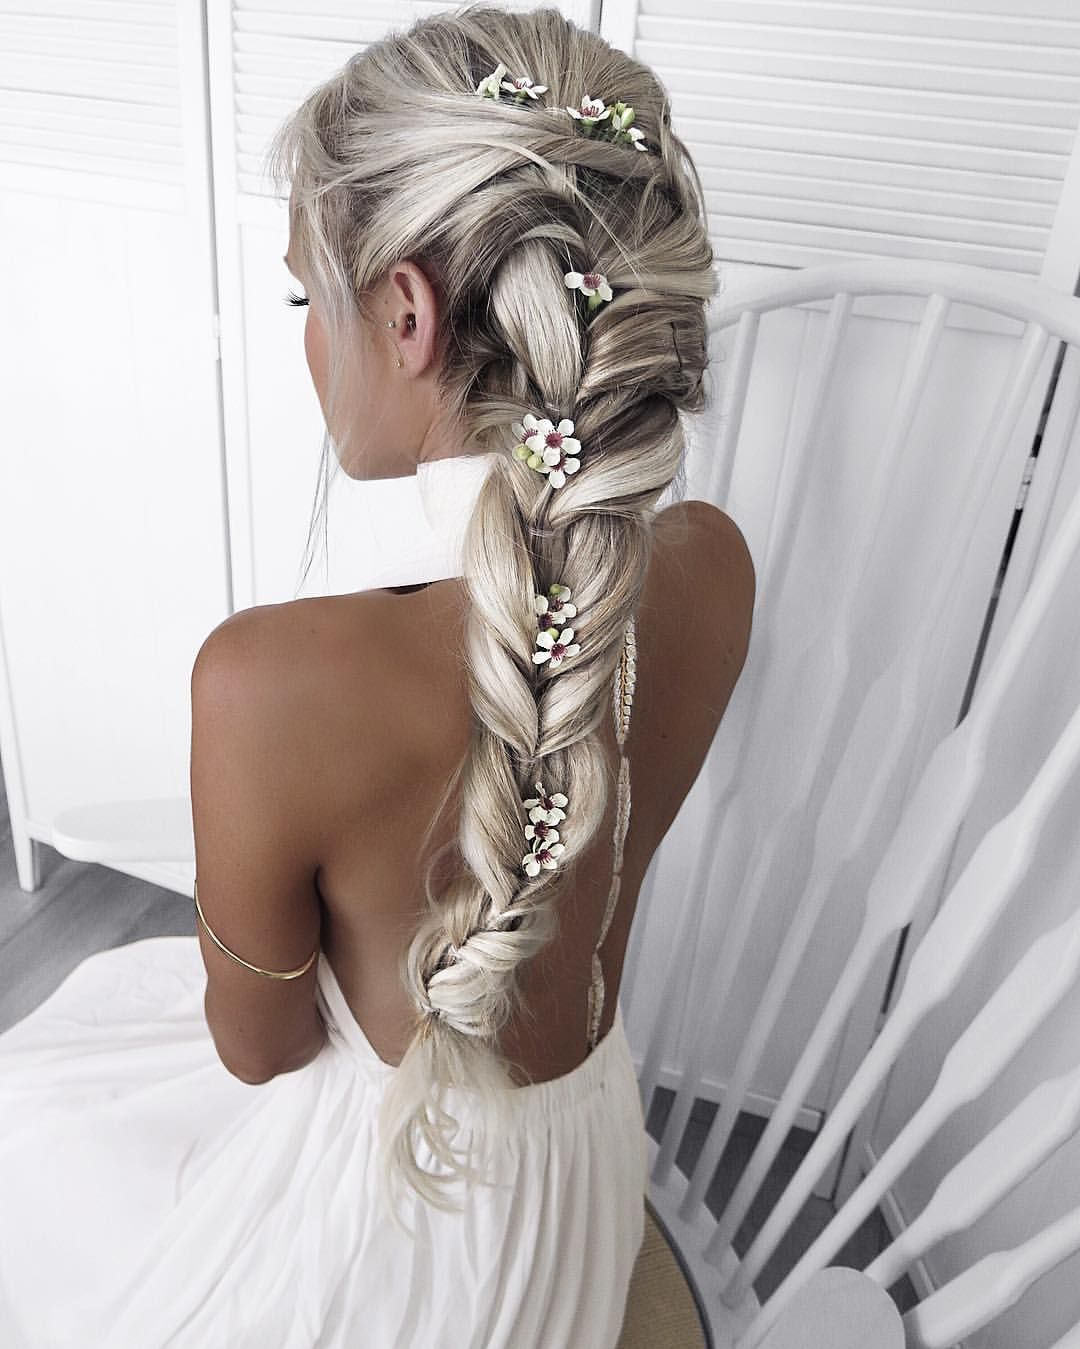 pin by candice delport on .hair.   wedding hairstyles, long